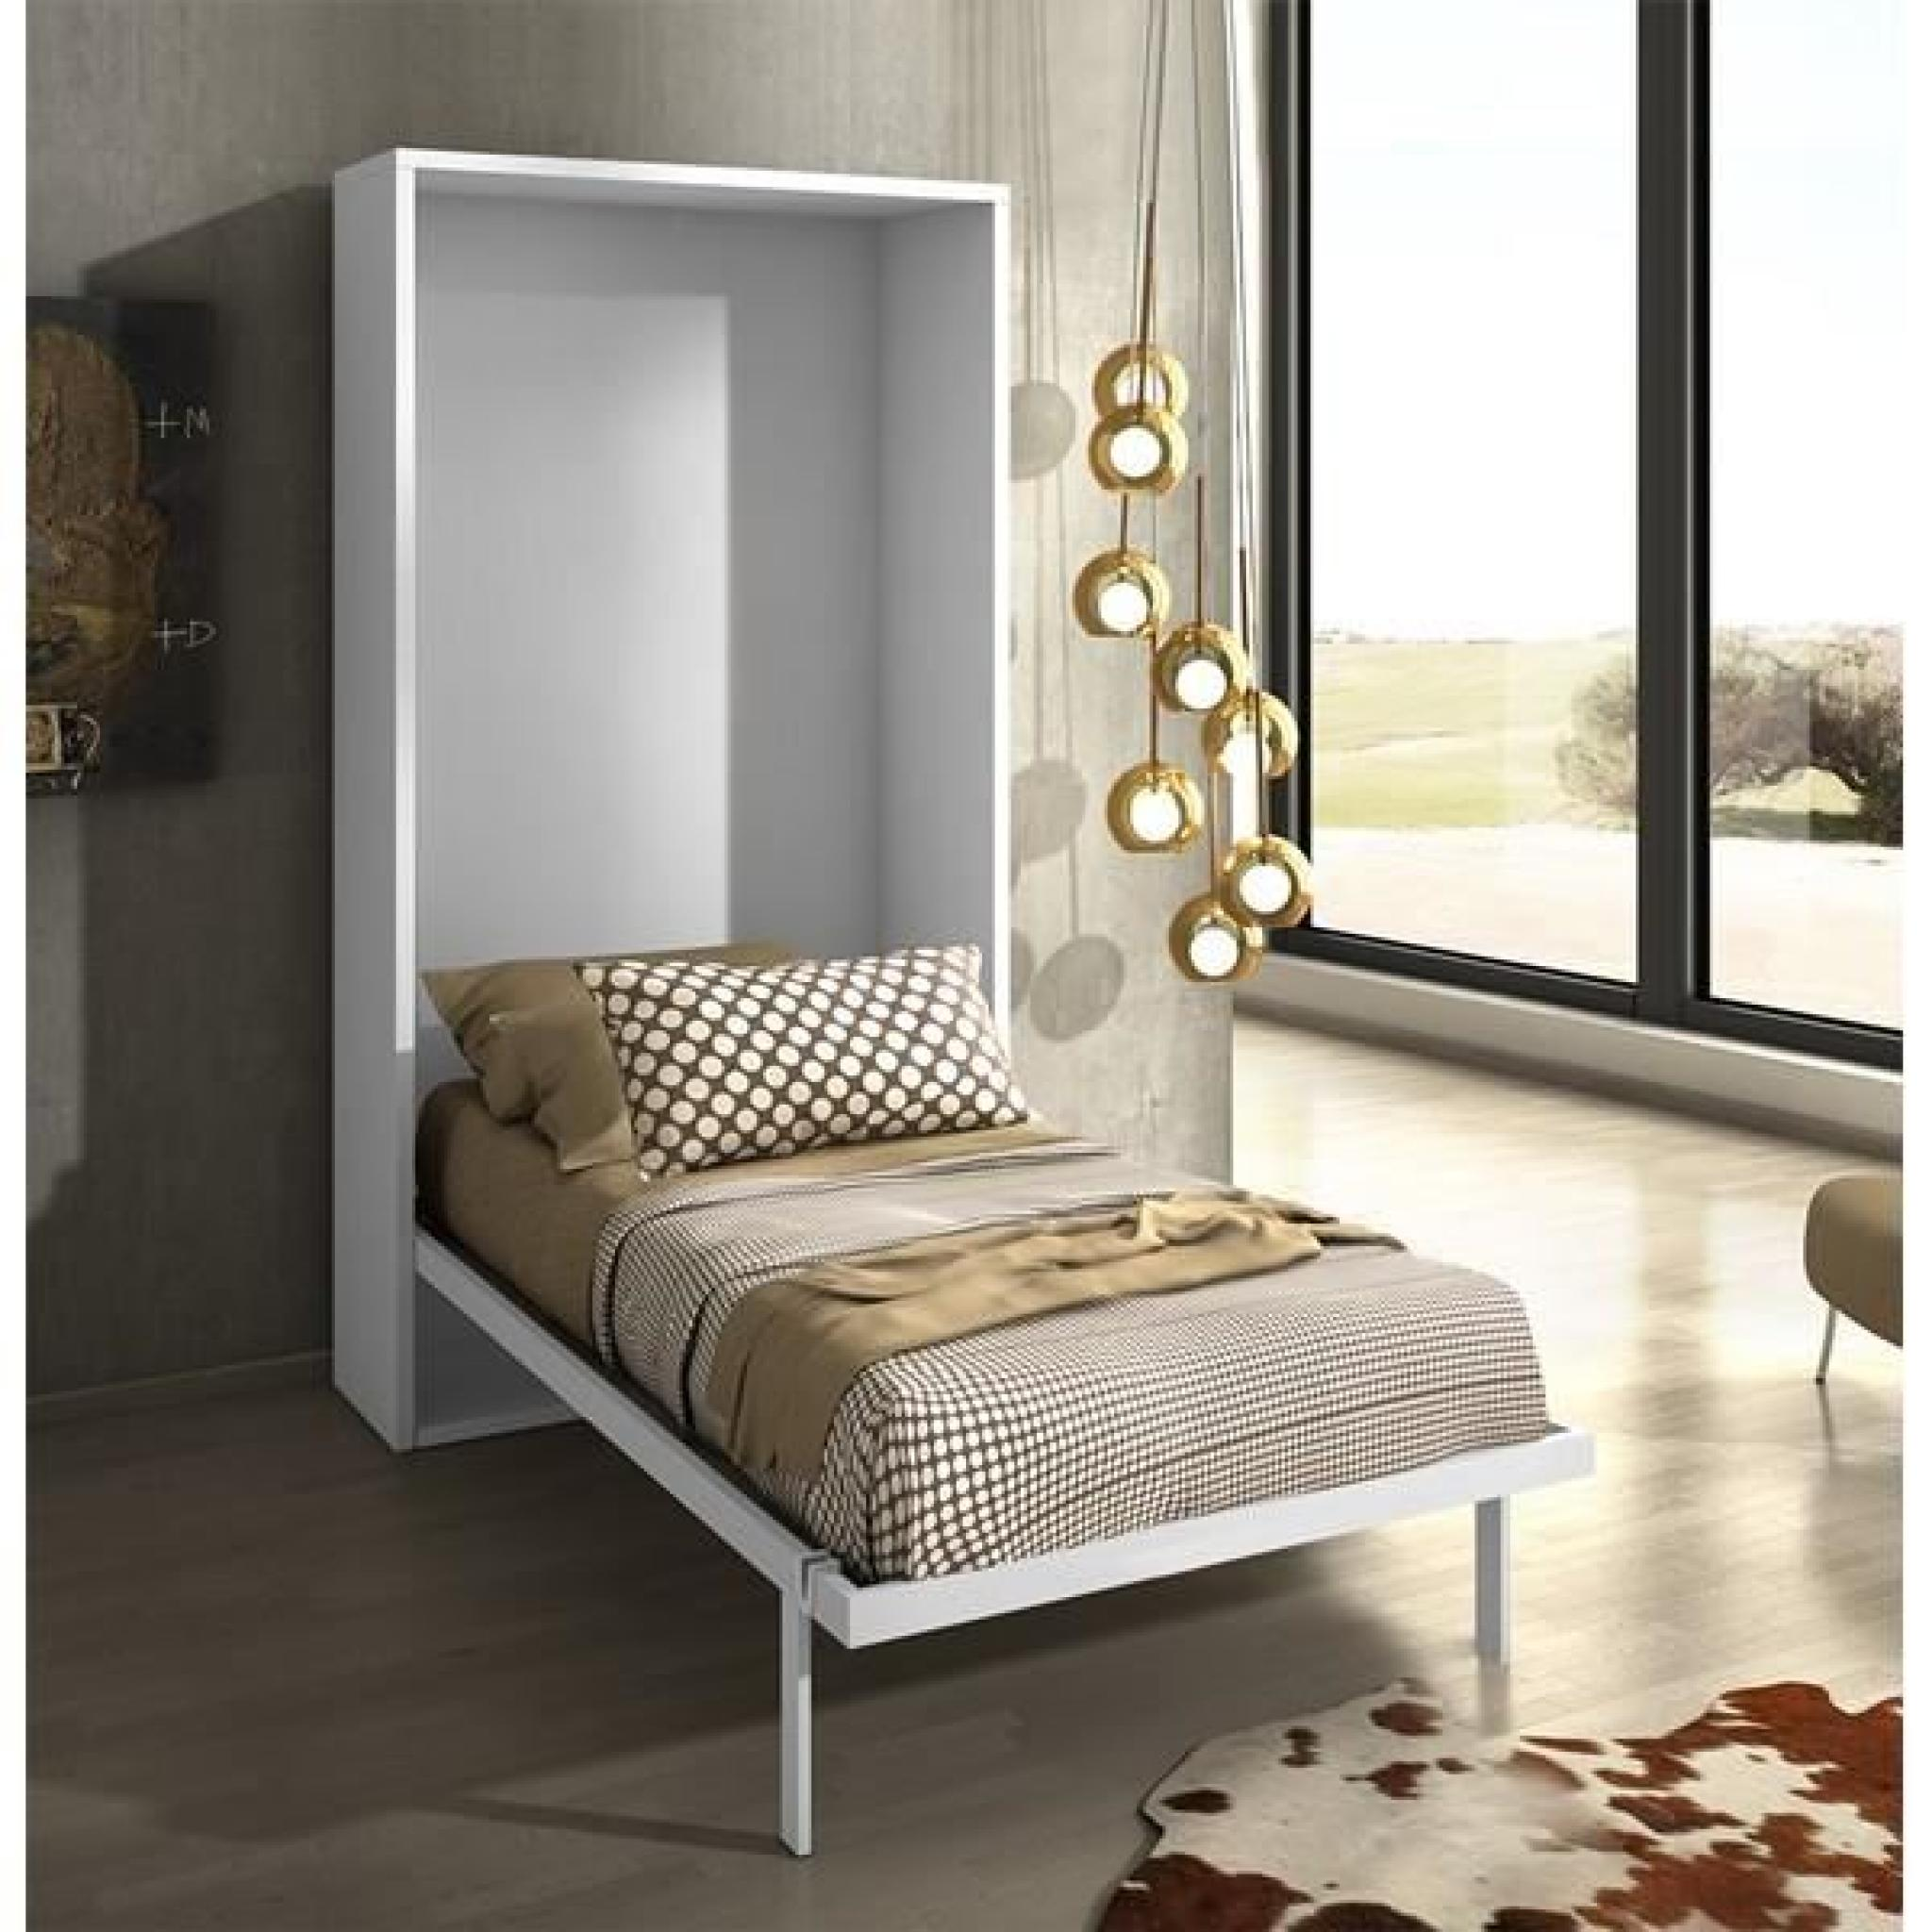 lit escamotable but perfect armoire lit escamotable verticale avec tagre et canap element with. Black Bedroom Furniture Sets. Home Design Ideas